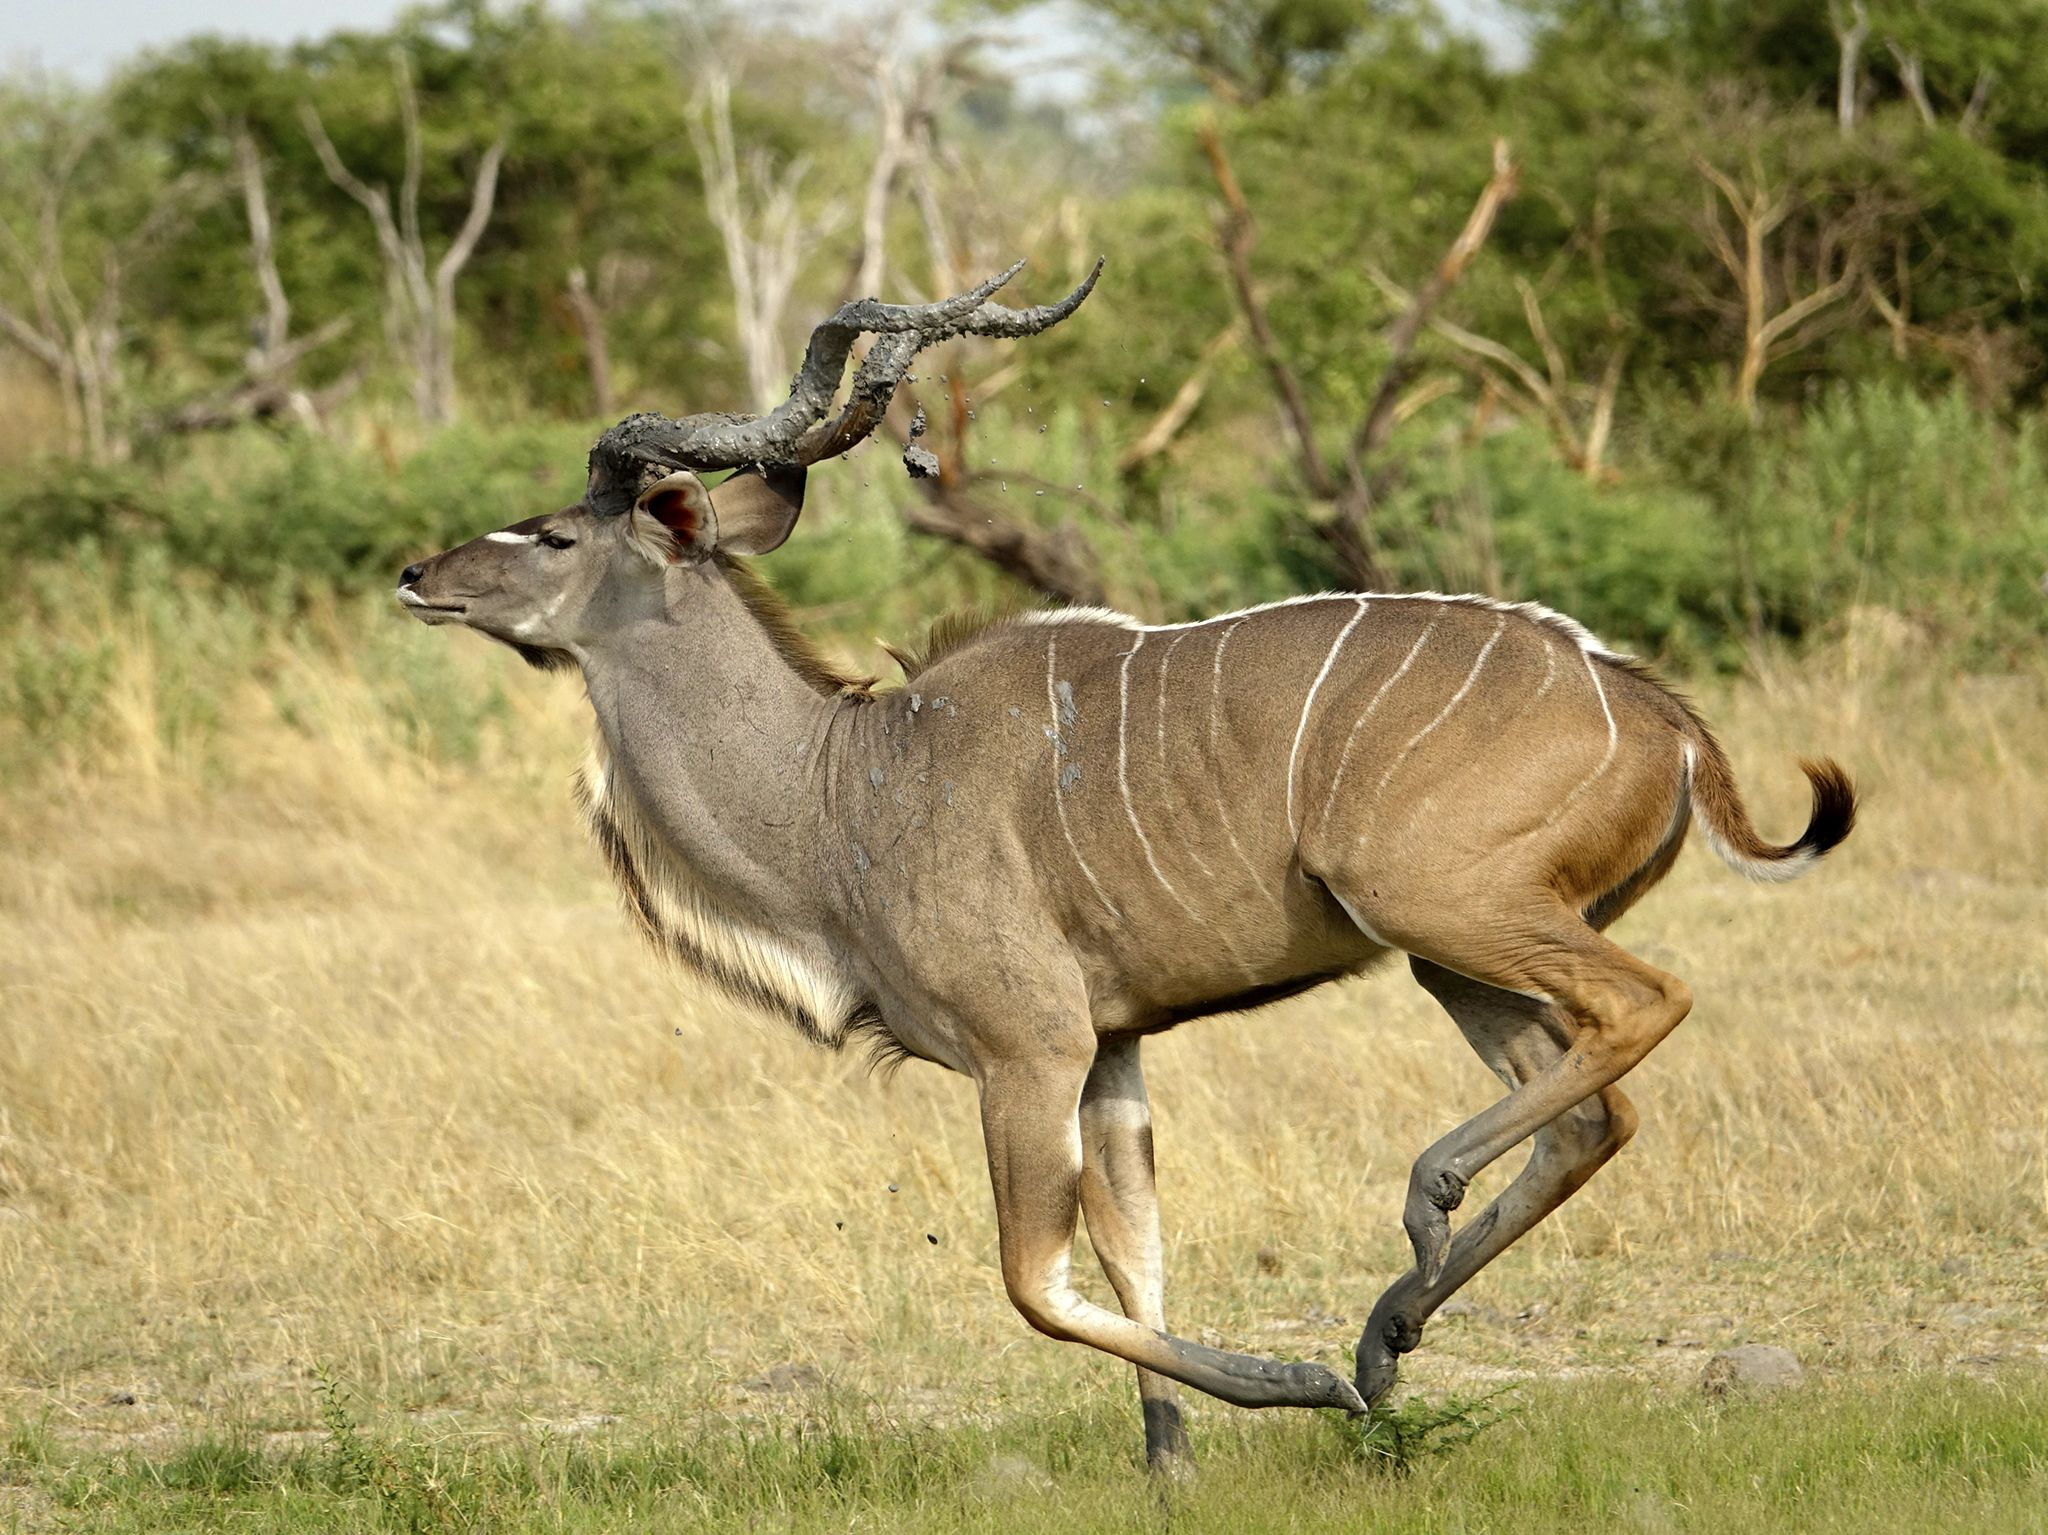 A kudu runs away after being startled at a water pool. This image is from Savage Kingdom. [Photo of the day - June 2020]